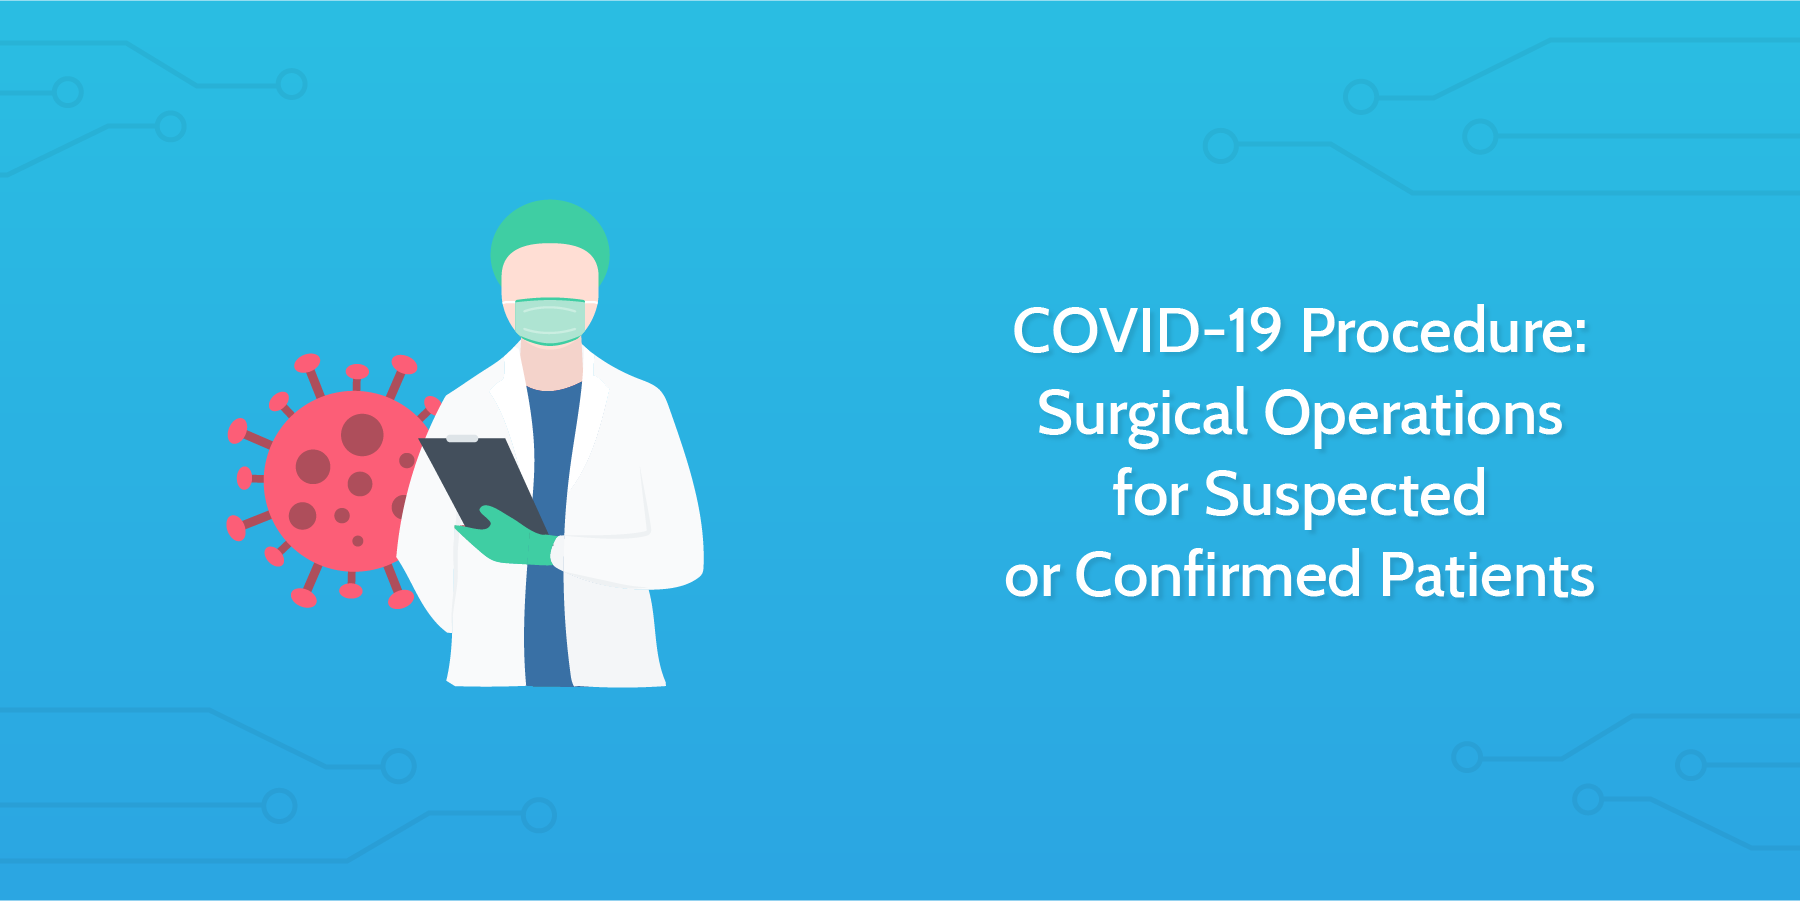 COVID-19 Procedure: Surgical Operations for Suspected or Confirmed Patients